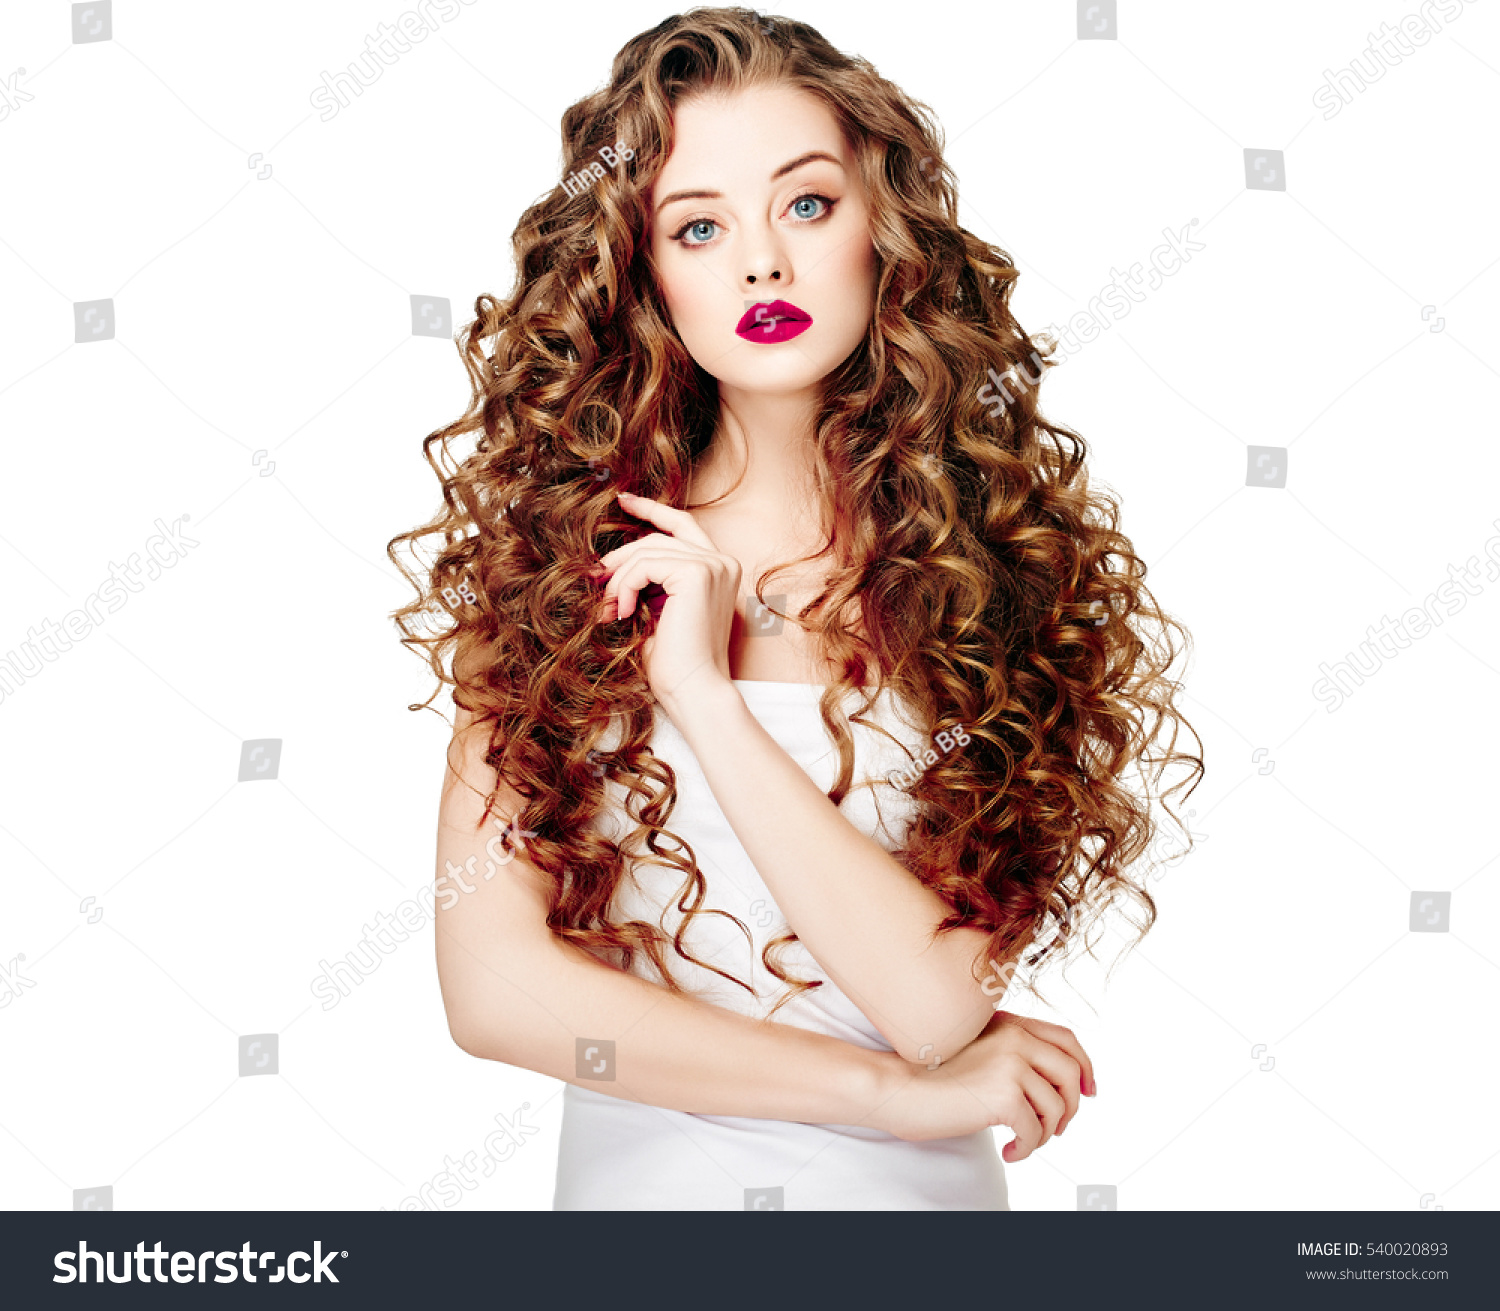 Beautiful People Curly Hair Fashion Girl Stock Photo 540020893 Shutterstock